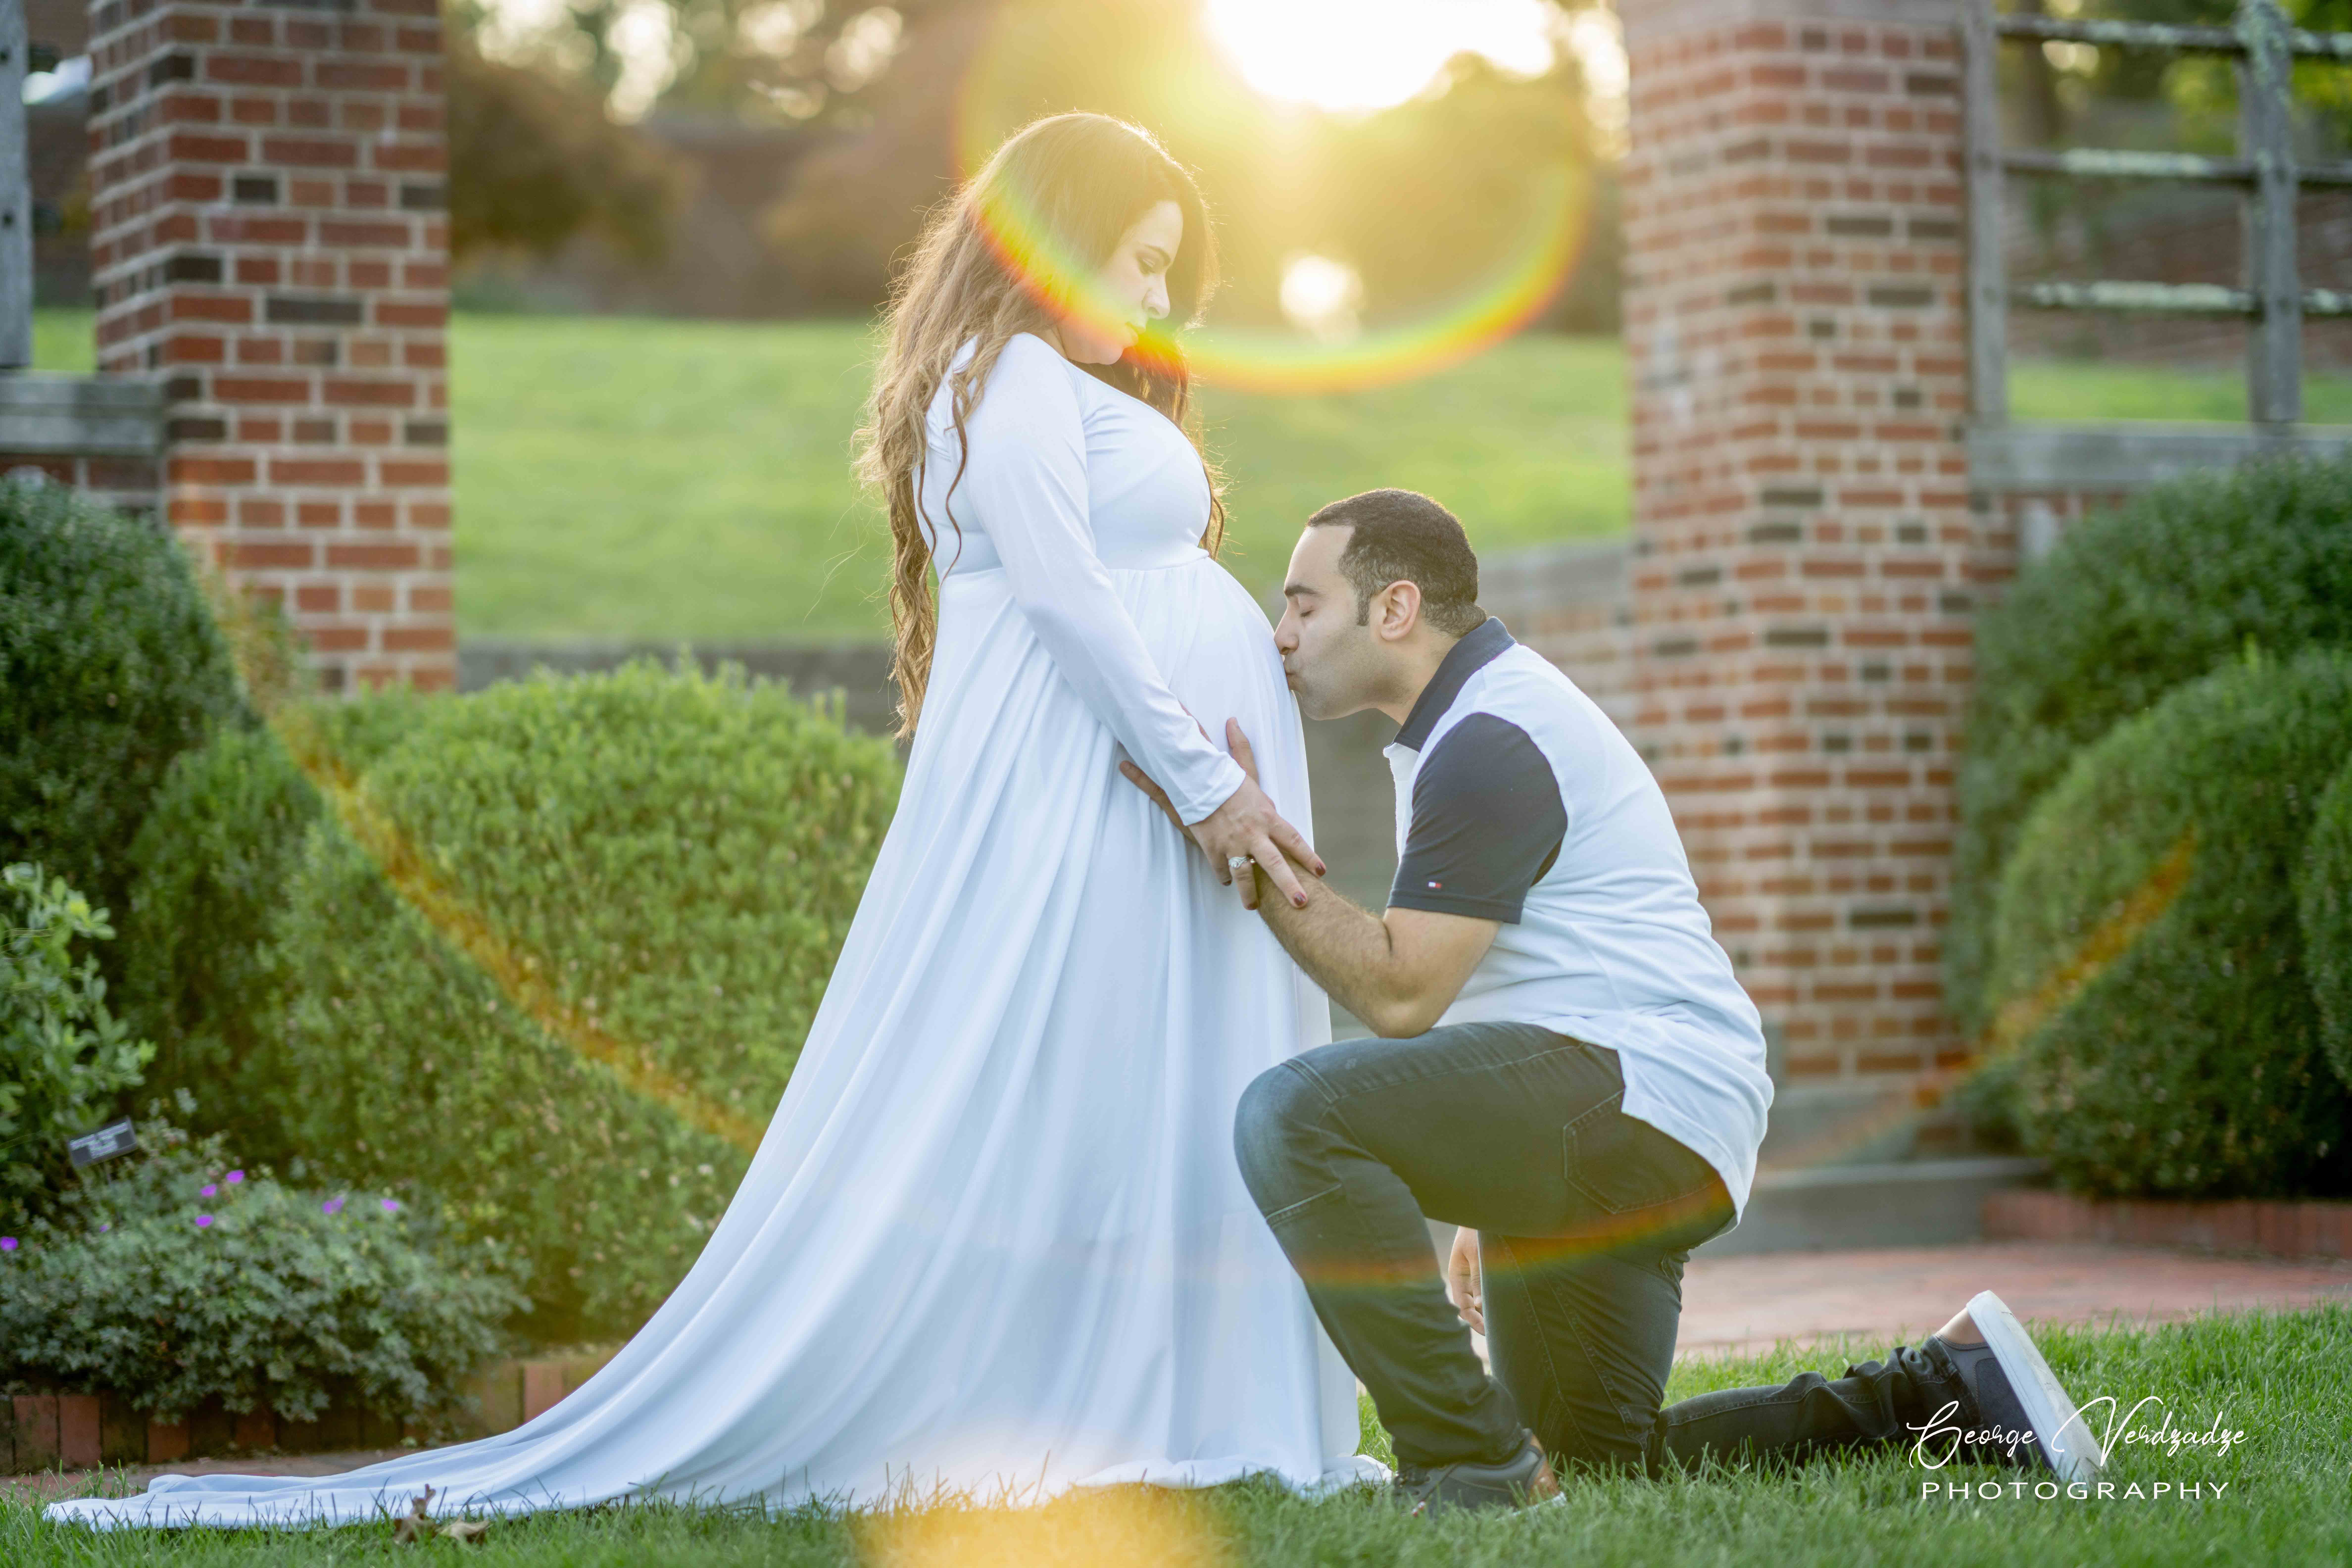 Maternity photography at Waveny Park